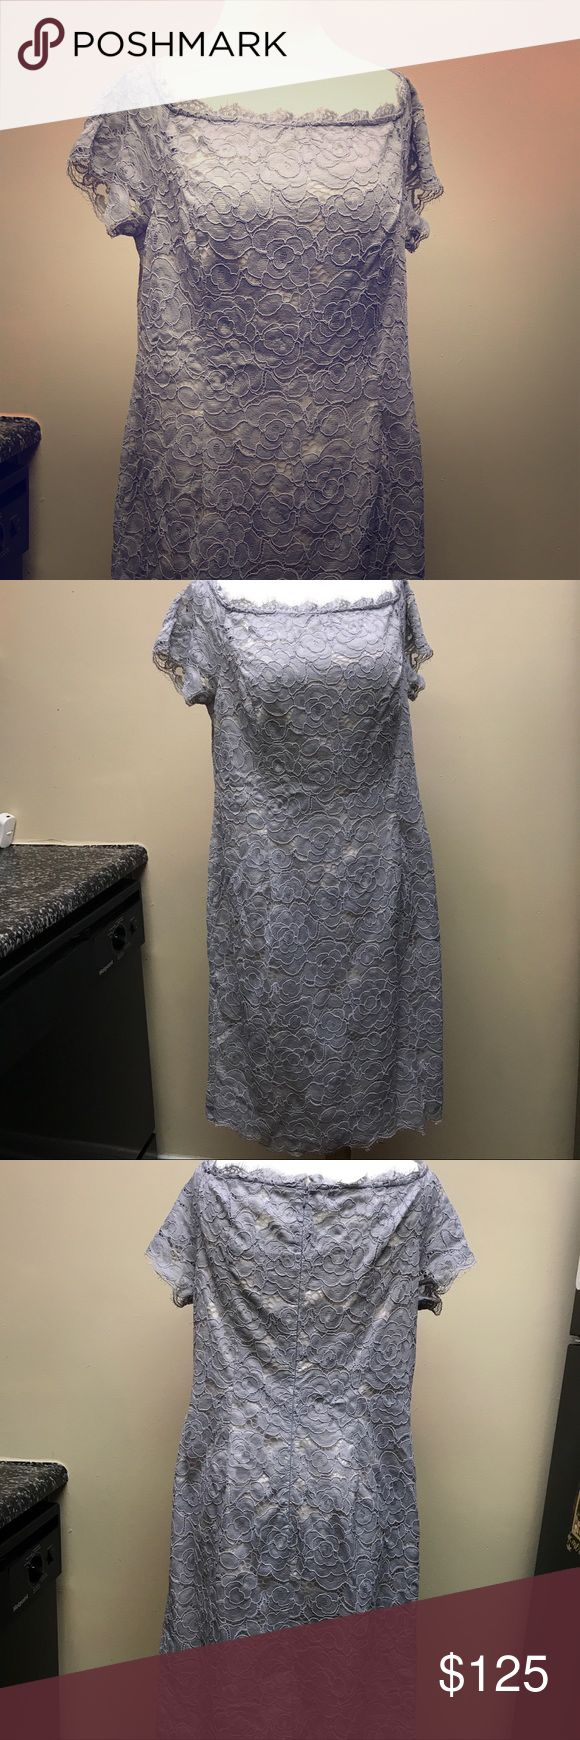 """Adrianna Papell • off the shoulder dress • NWT Adrianna Papell • light blue """"silvery blue"""" • off the shoulder • lace • dress •• Bought for a mother of bride dress and didn't take back in time •• Full price: $160. •• new with tags •• very flattering on Adrianna Papell Dresses"""